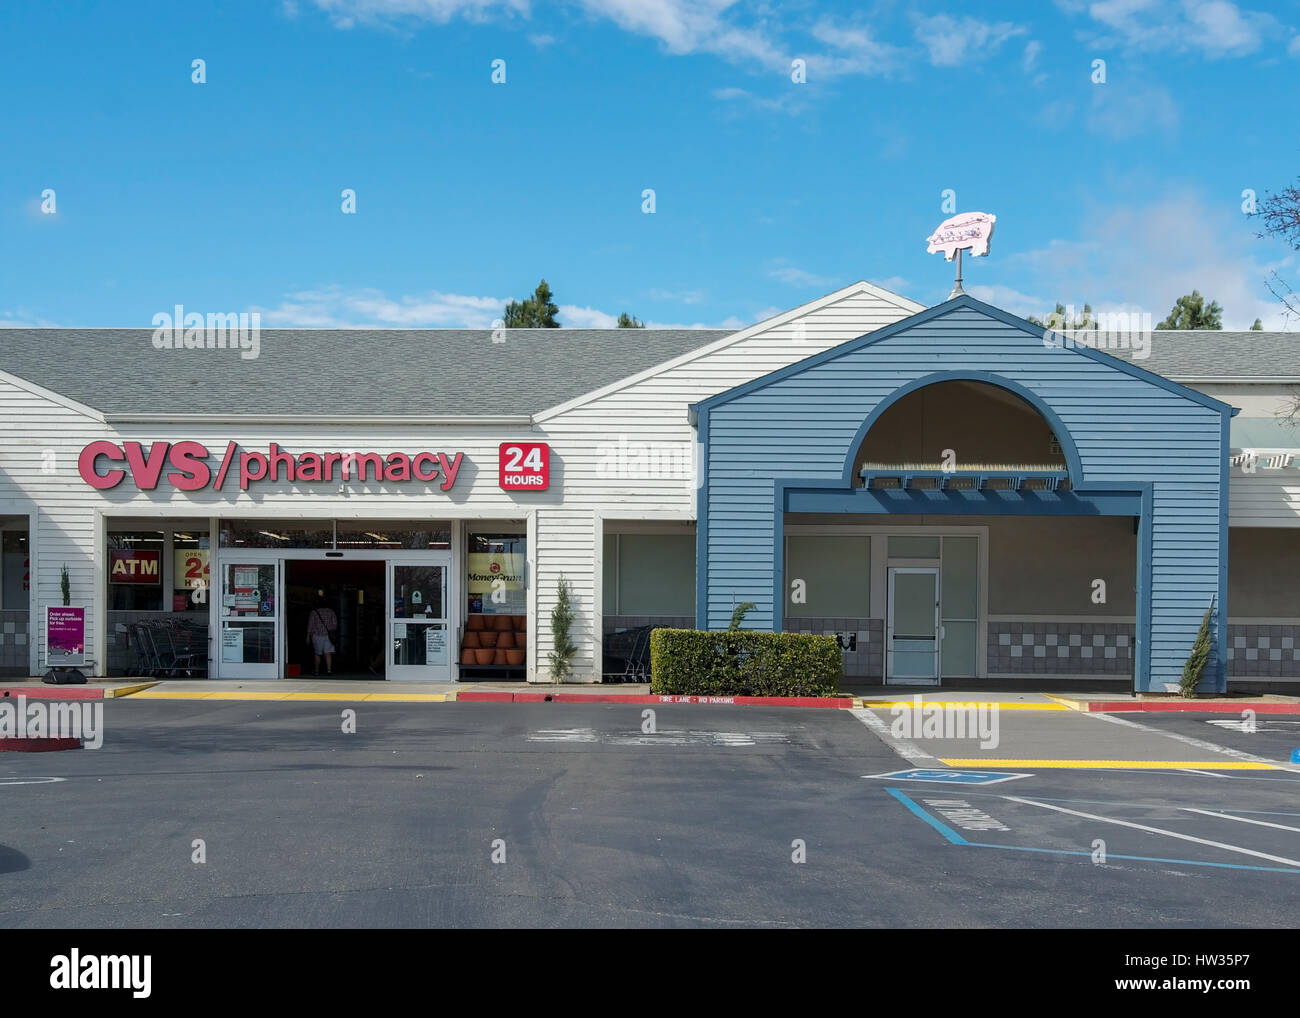 Big Box Stores Stock Photos & Big Box Stores Stock Images - Alamy